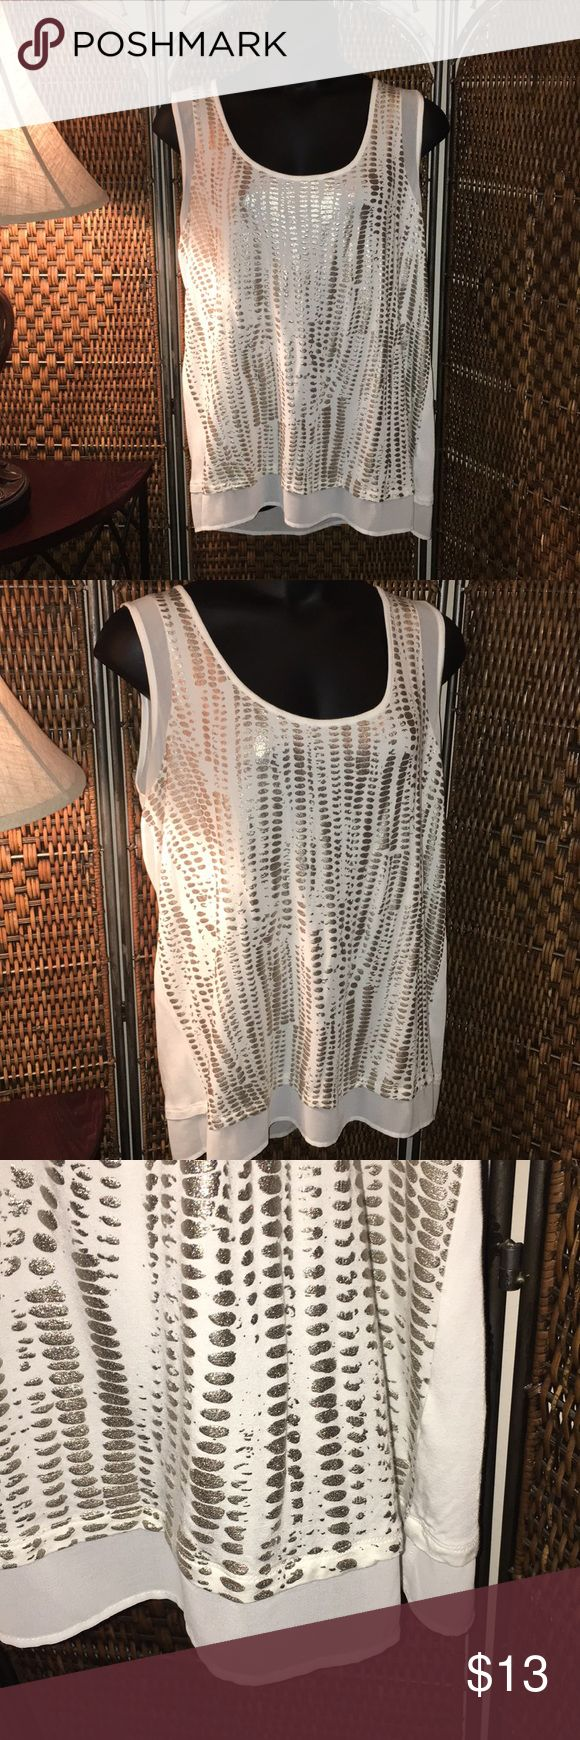 🅿️lus Size Cute tank Beautiful tank in excellent condition. Color is off white and goldish/silverish. Many compliments with this on. No stains or rips. a.n.a Tops